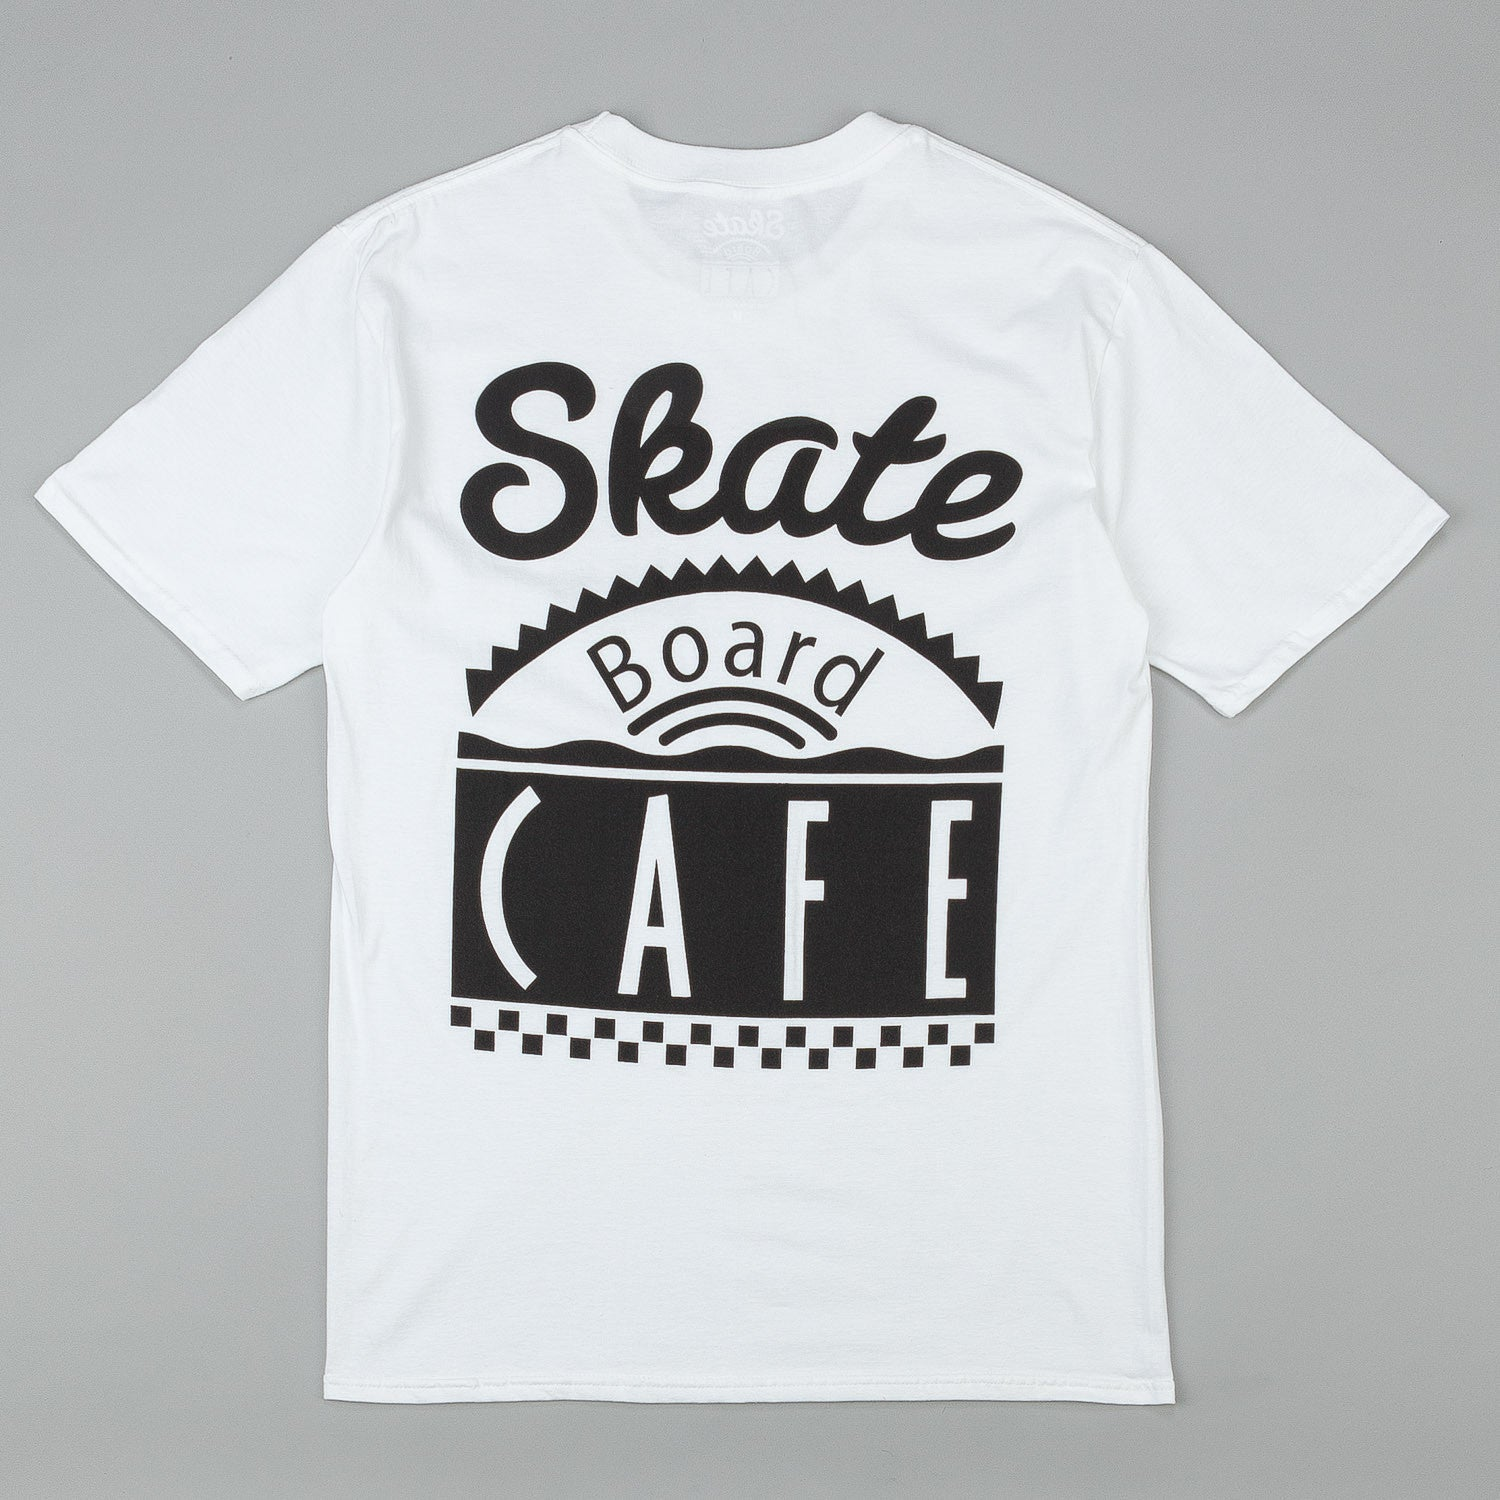 Skateboard Cafe Diner Logo T-Shirt - White